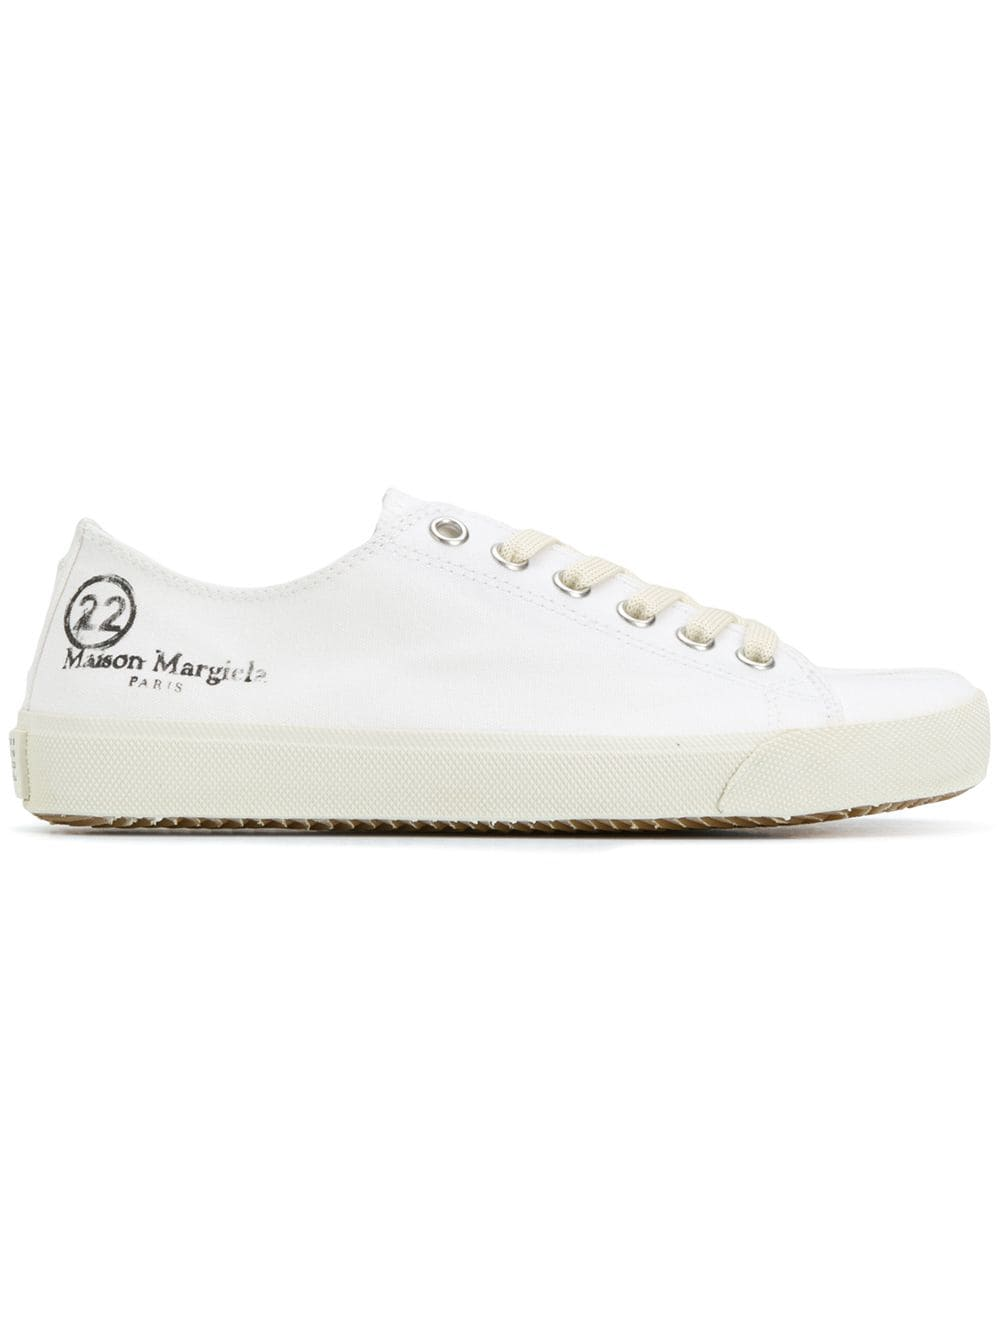 MAISON MARGIELA WOMEN TABI SNEAKERS